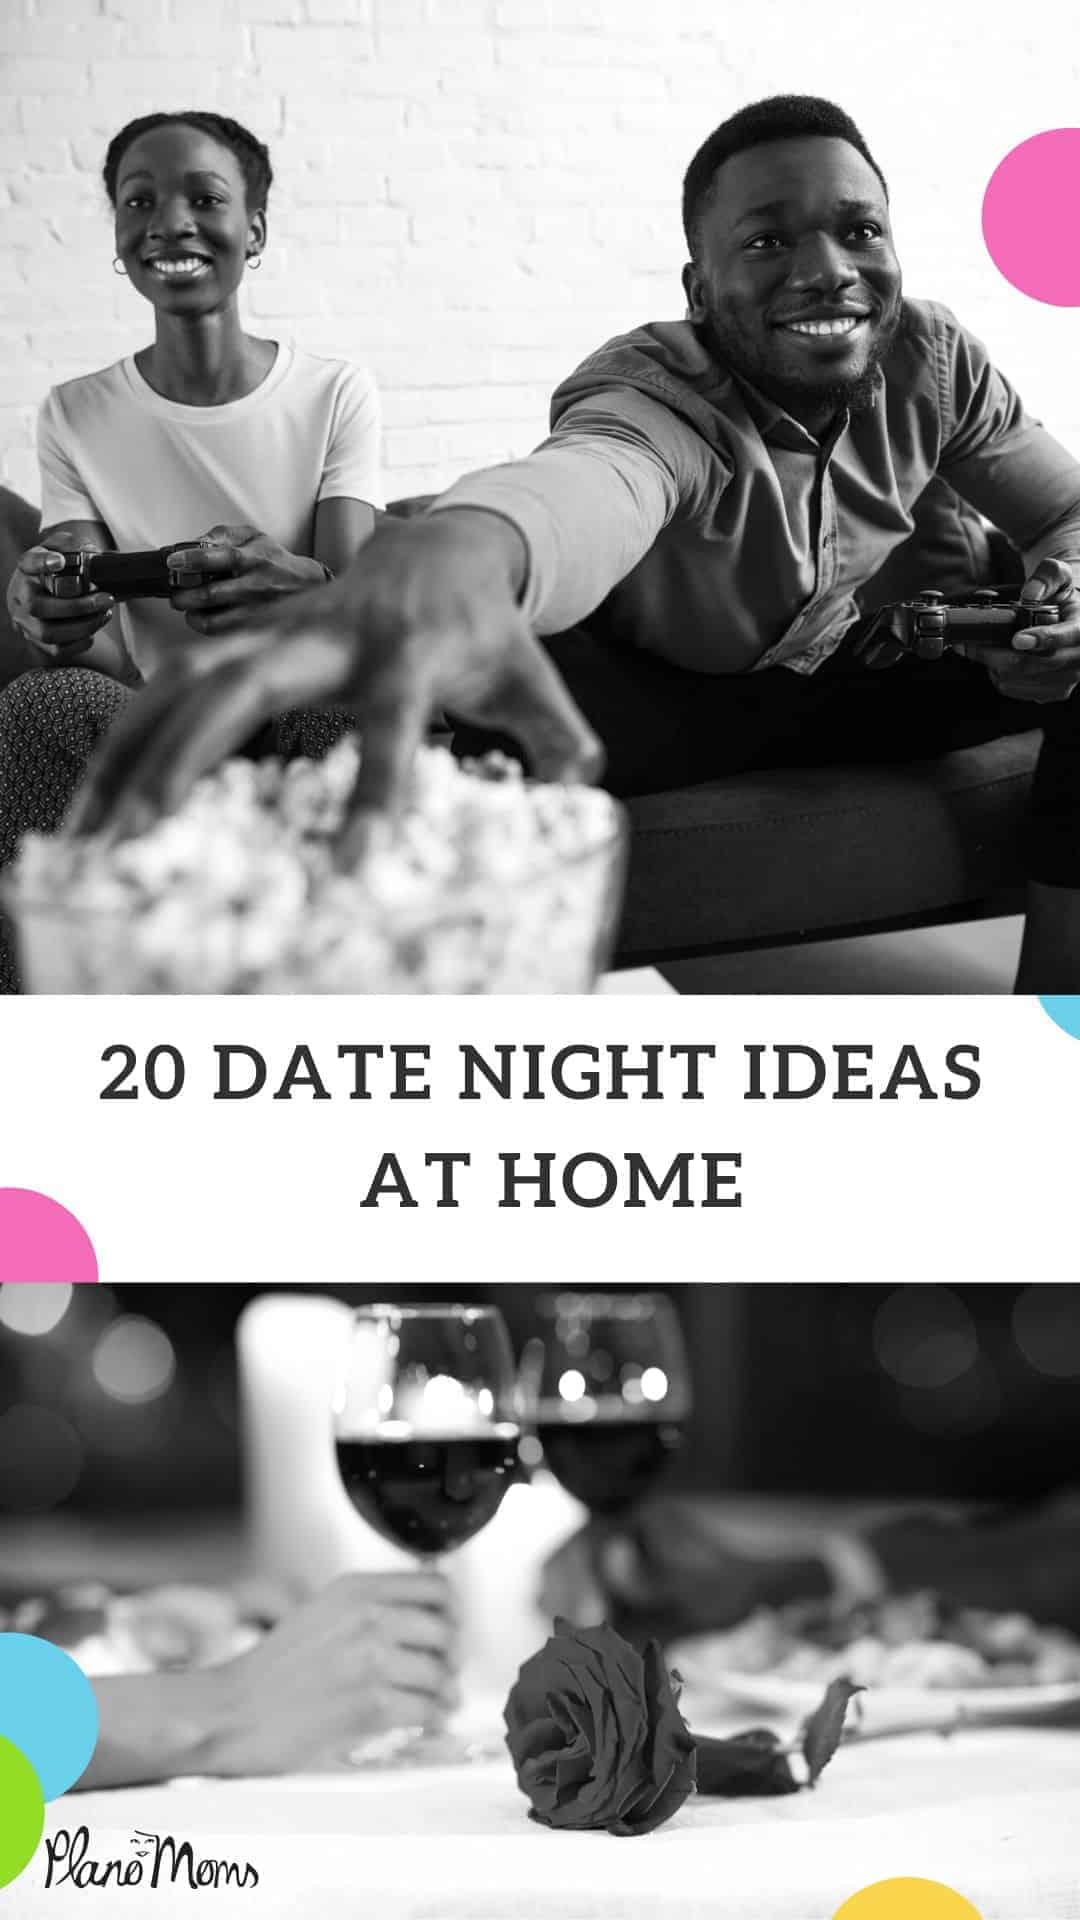 20 Date Night Ideas at home